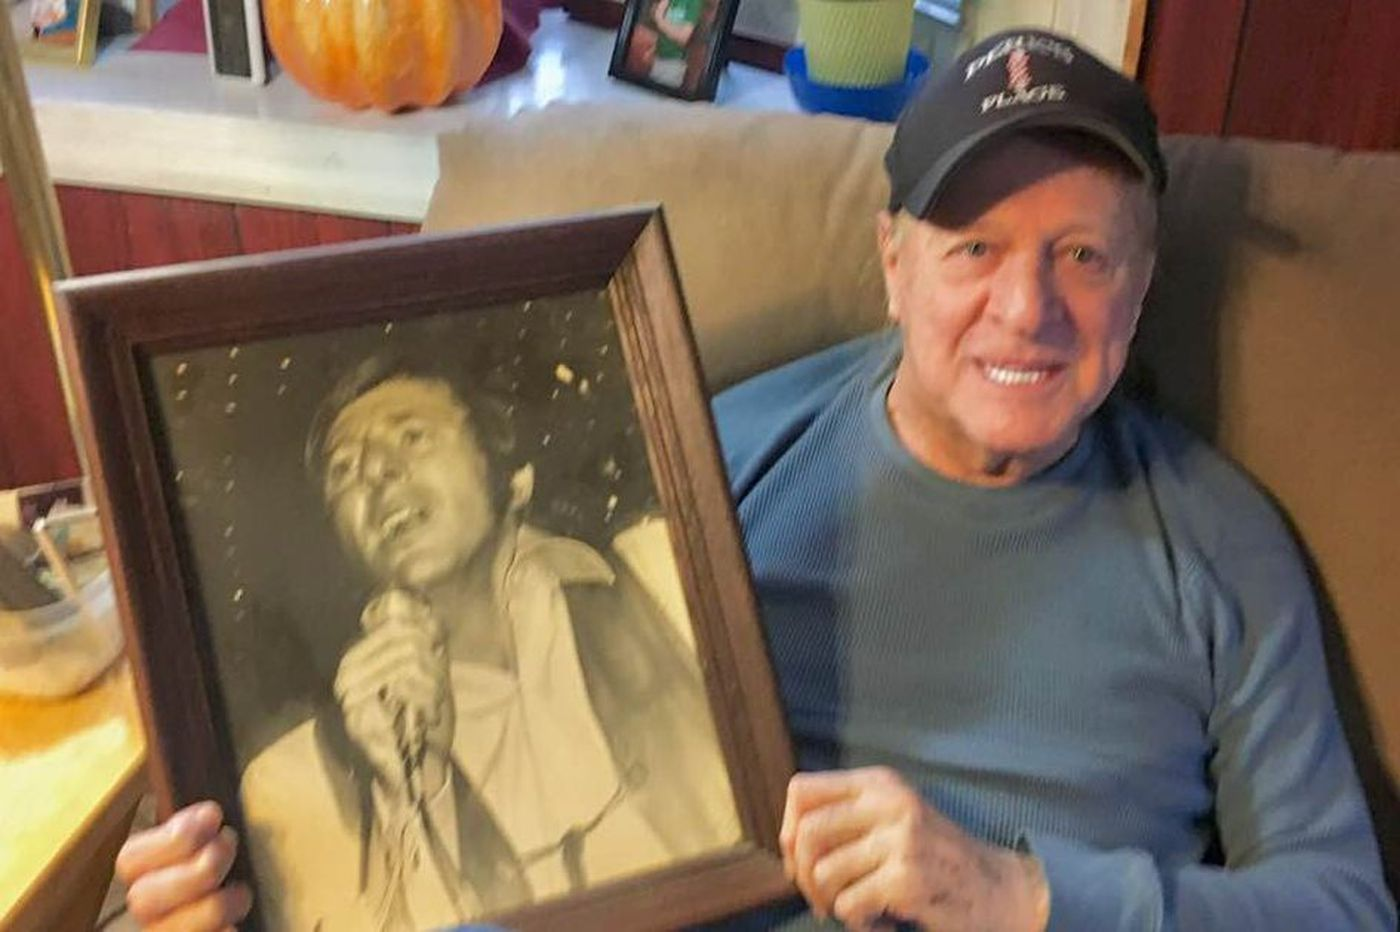 Billy Harner, Pine Hill's own rock star, chose his NJ home over Hollywood